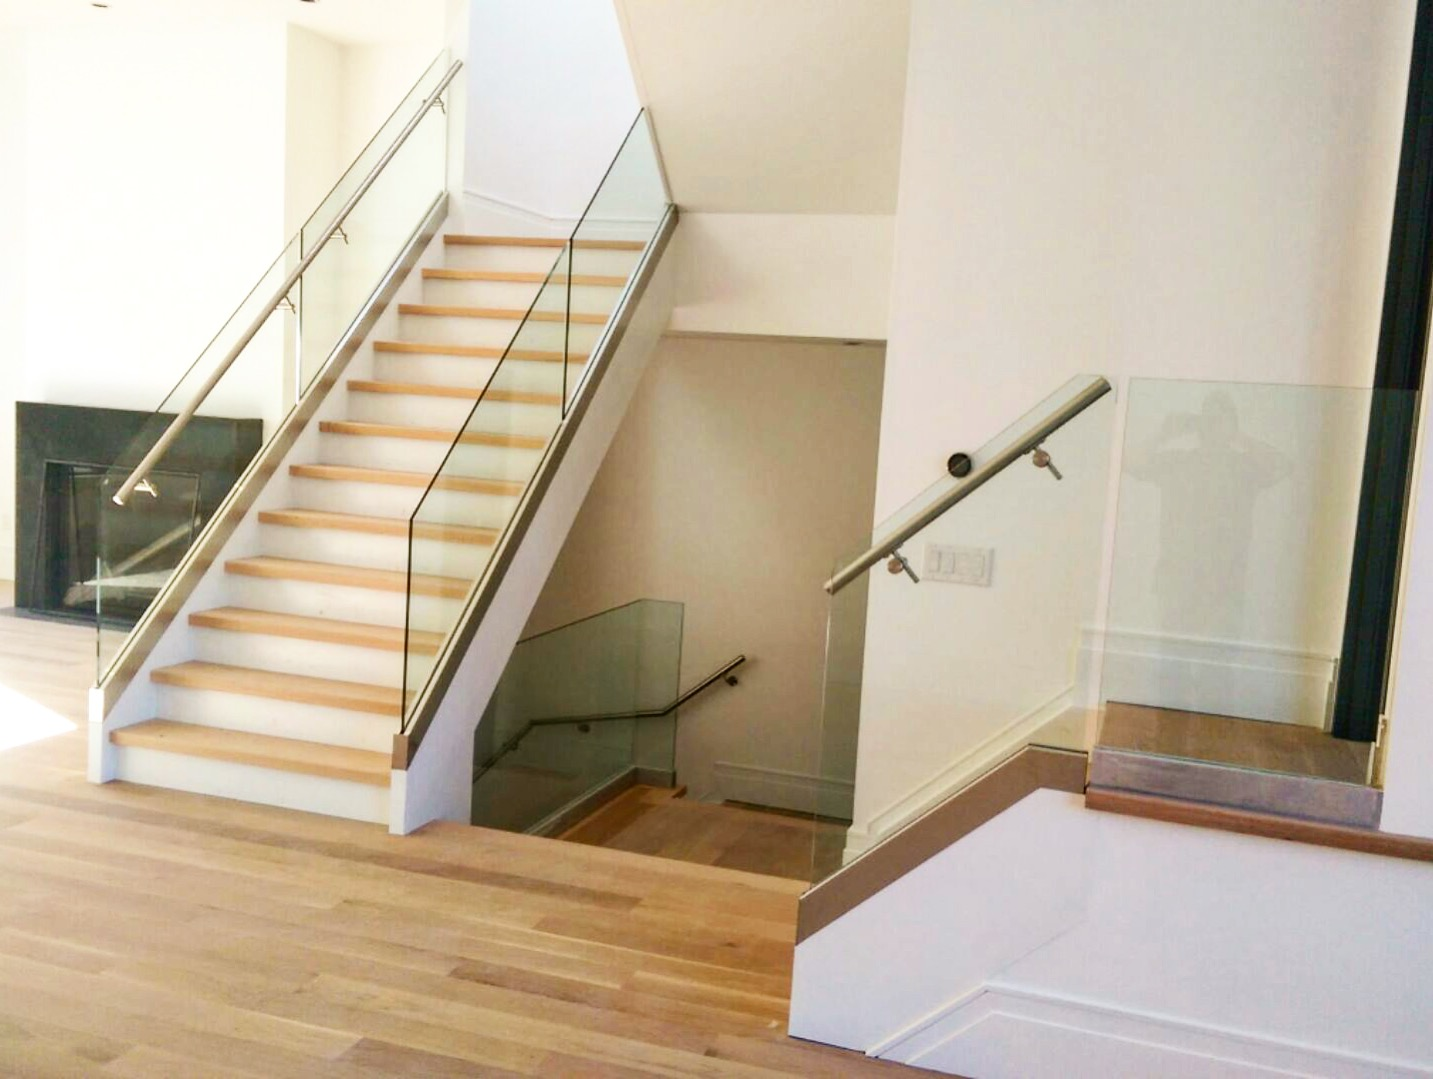 Toronto contemporary at its finest. Our friends @purebuildinggroup knocked these mirrored contemporary semi-detached residences out of the park! We supplied the stairs - 10 sets per unit! The stairs were closed 2 sides, paint grade stringers with 1-3/4 white oak treads. Hats off to Global Aluminum Solutions for a killer railing/glass job.  Job location: Toronto, ON.